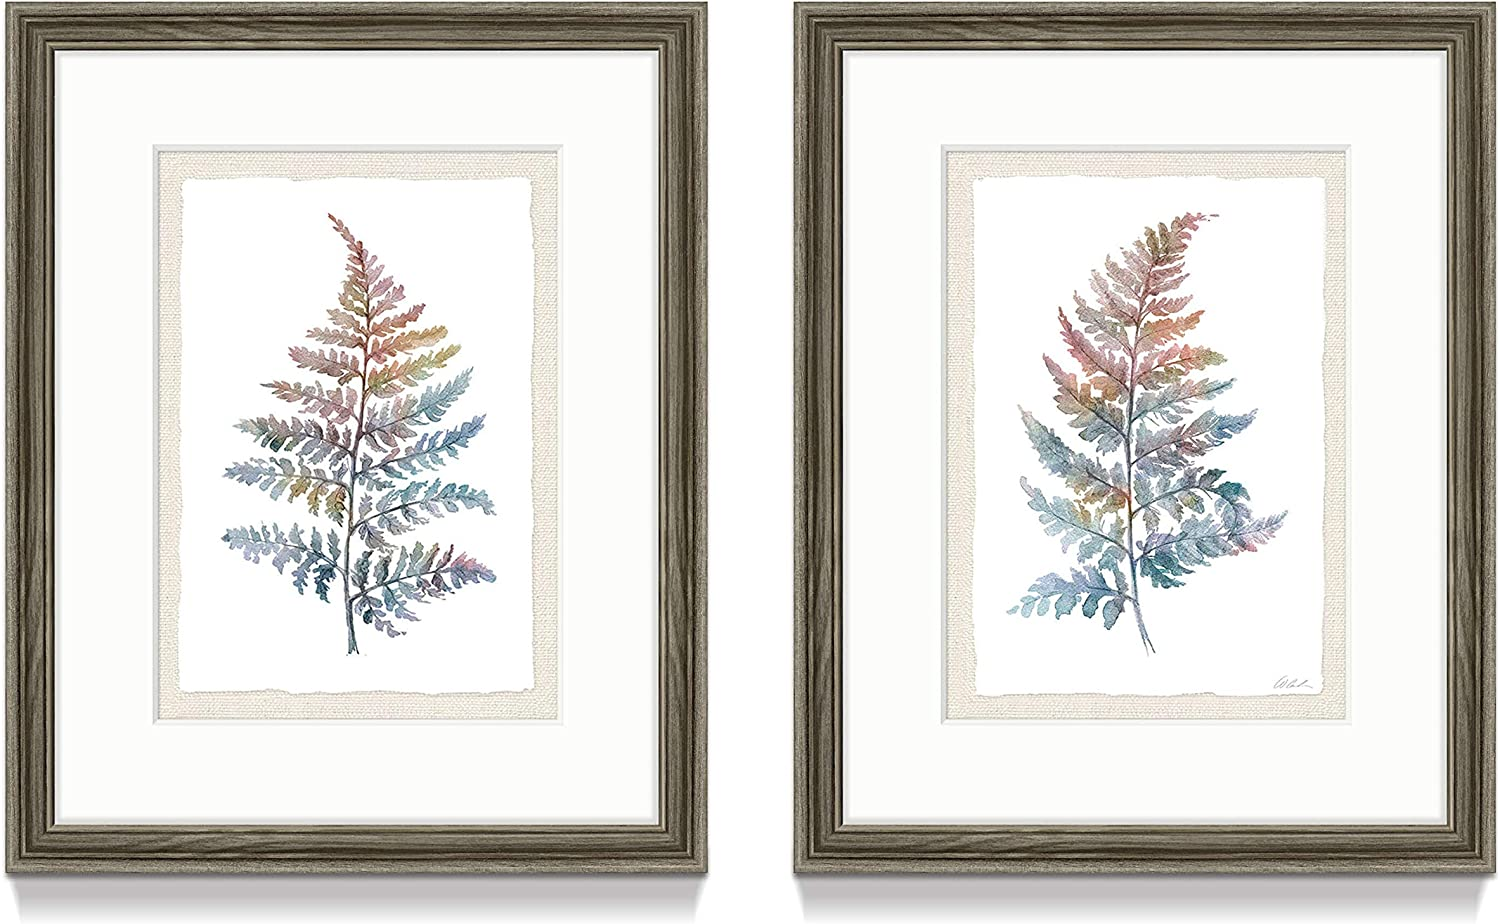 Herb Plant Framed Wall Art – Set of 2 Beautiful Elegant Botanical Picture Prints with Wood Frame for Decor Trendy Dining Room or Bathroom(11'' x 14'' x 2 Panels)